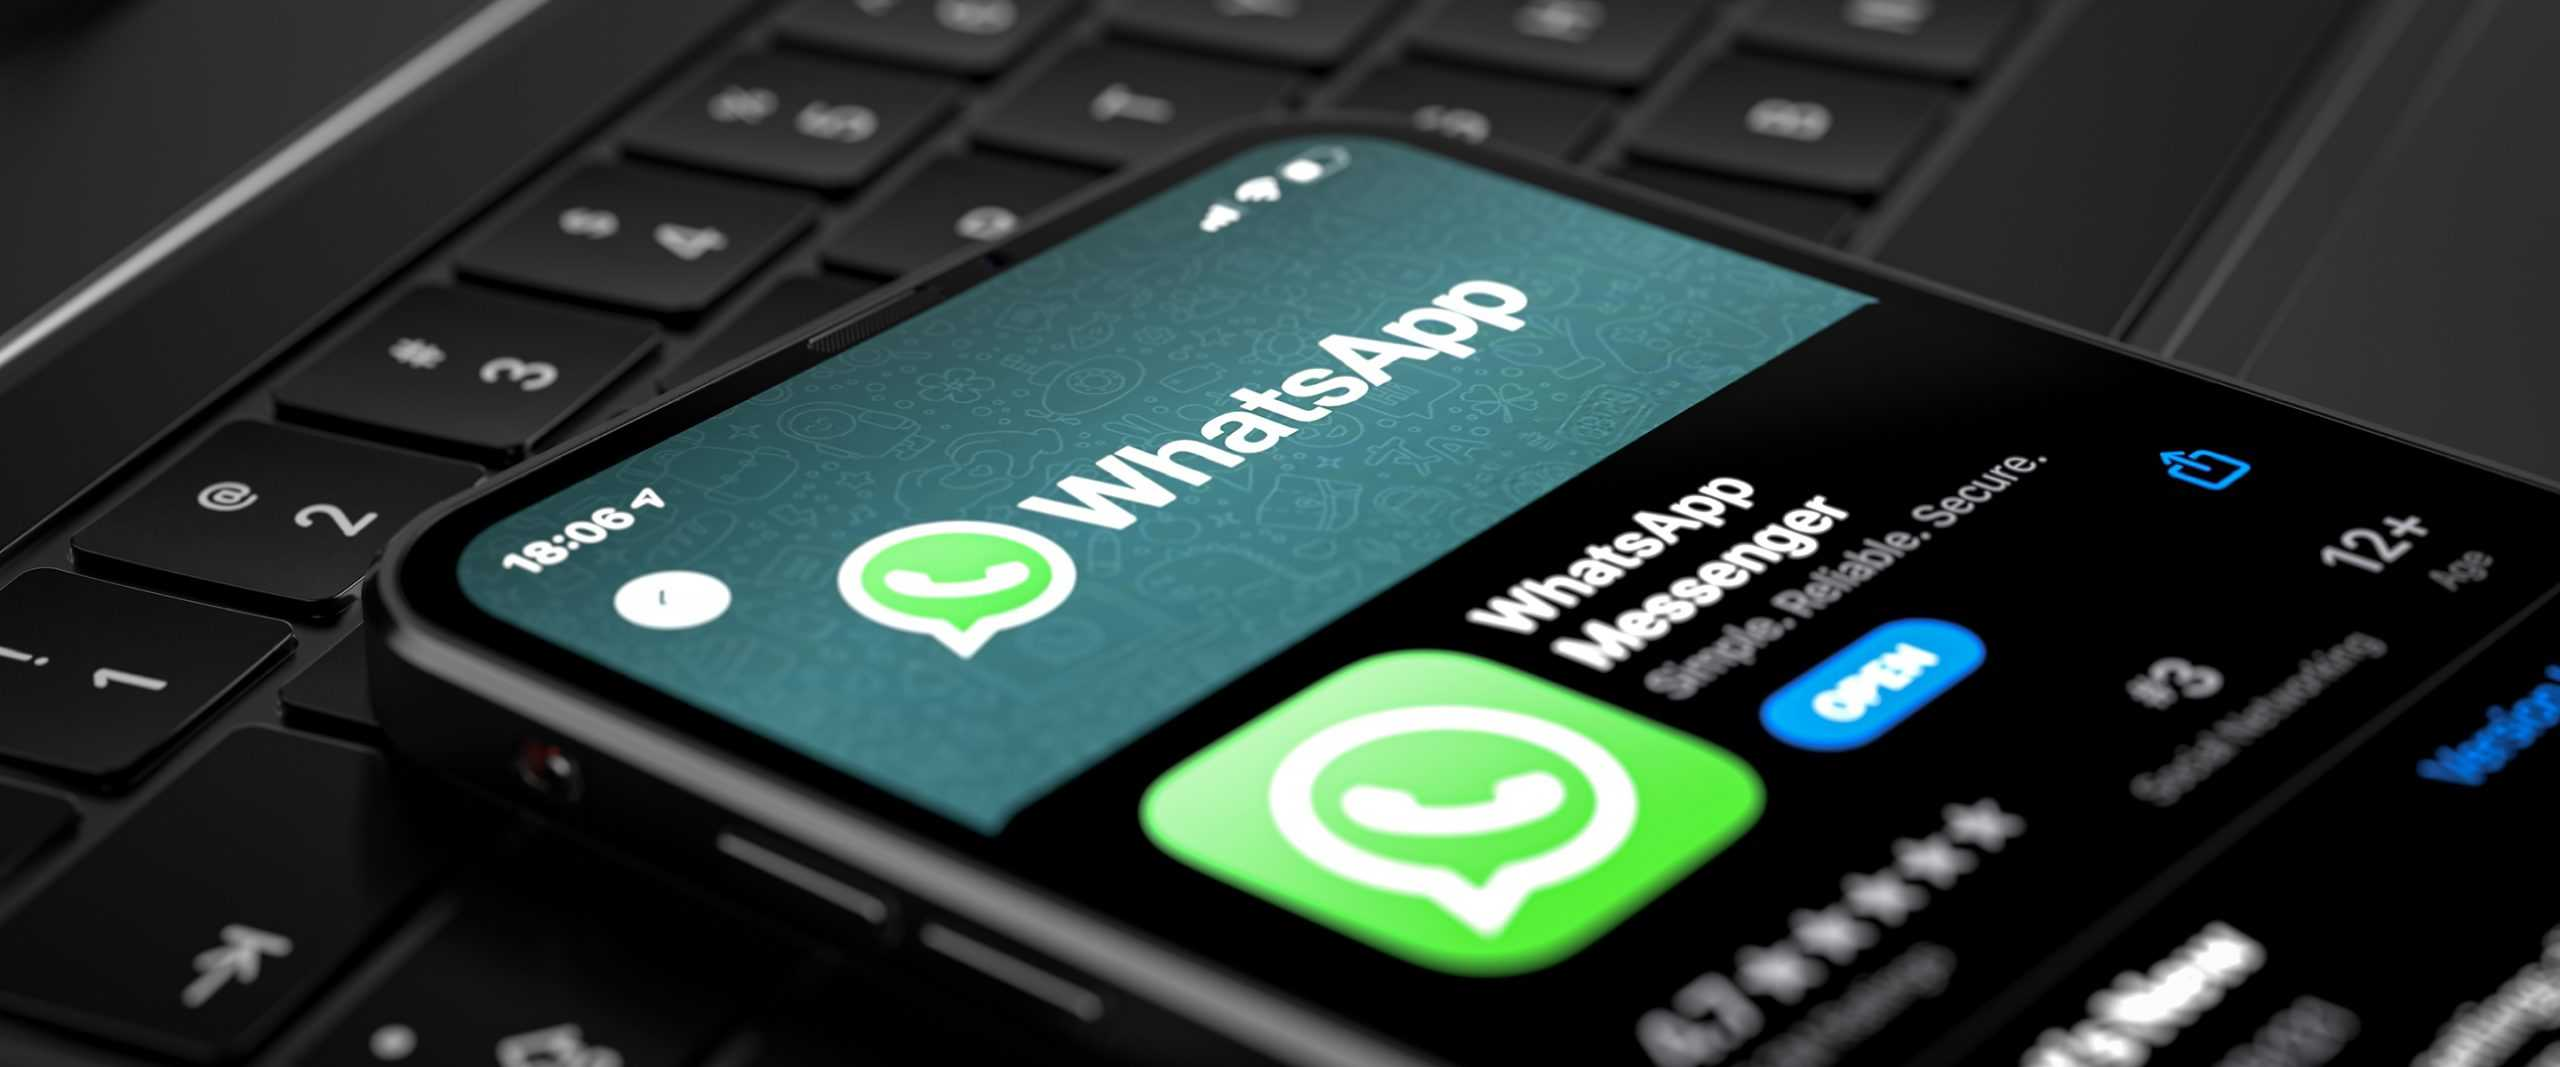 WhatsApp is receiving significant backlash due to its privacy policy update